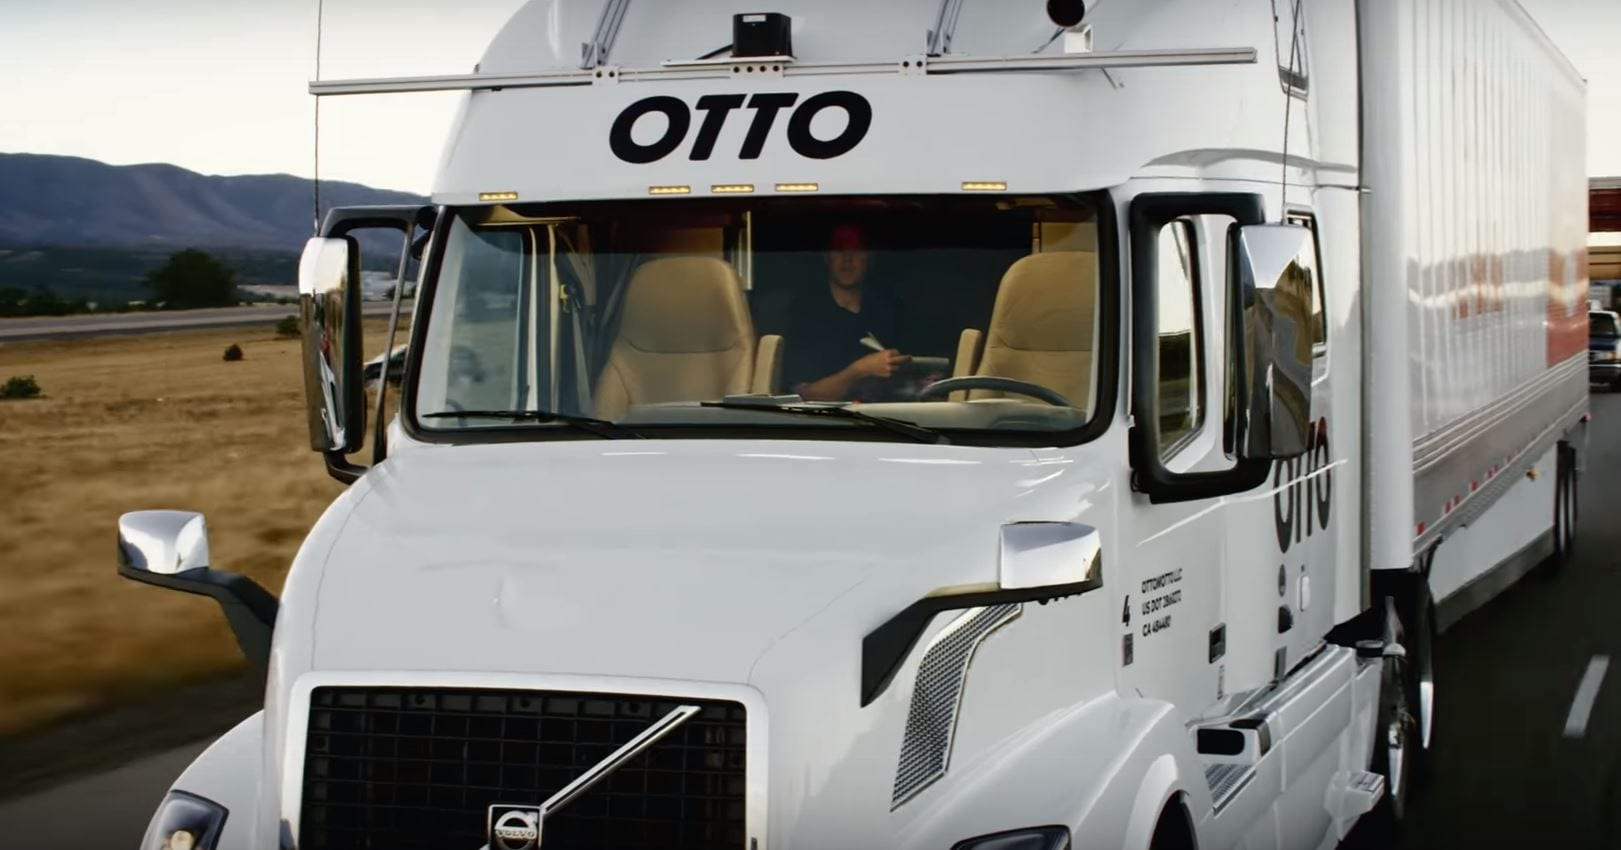 ubers otto makes budweiser beer run in self driving truck